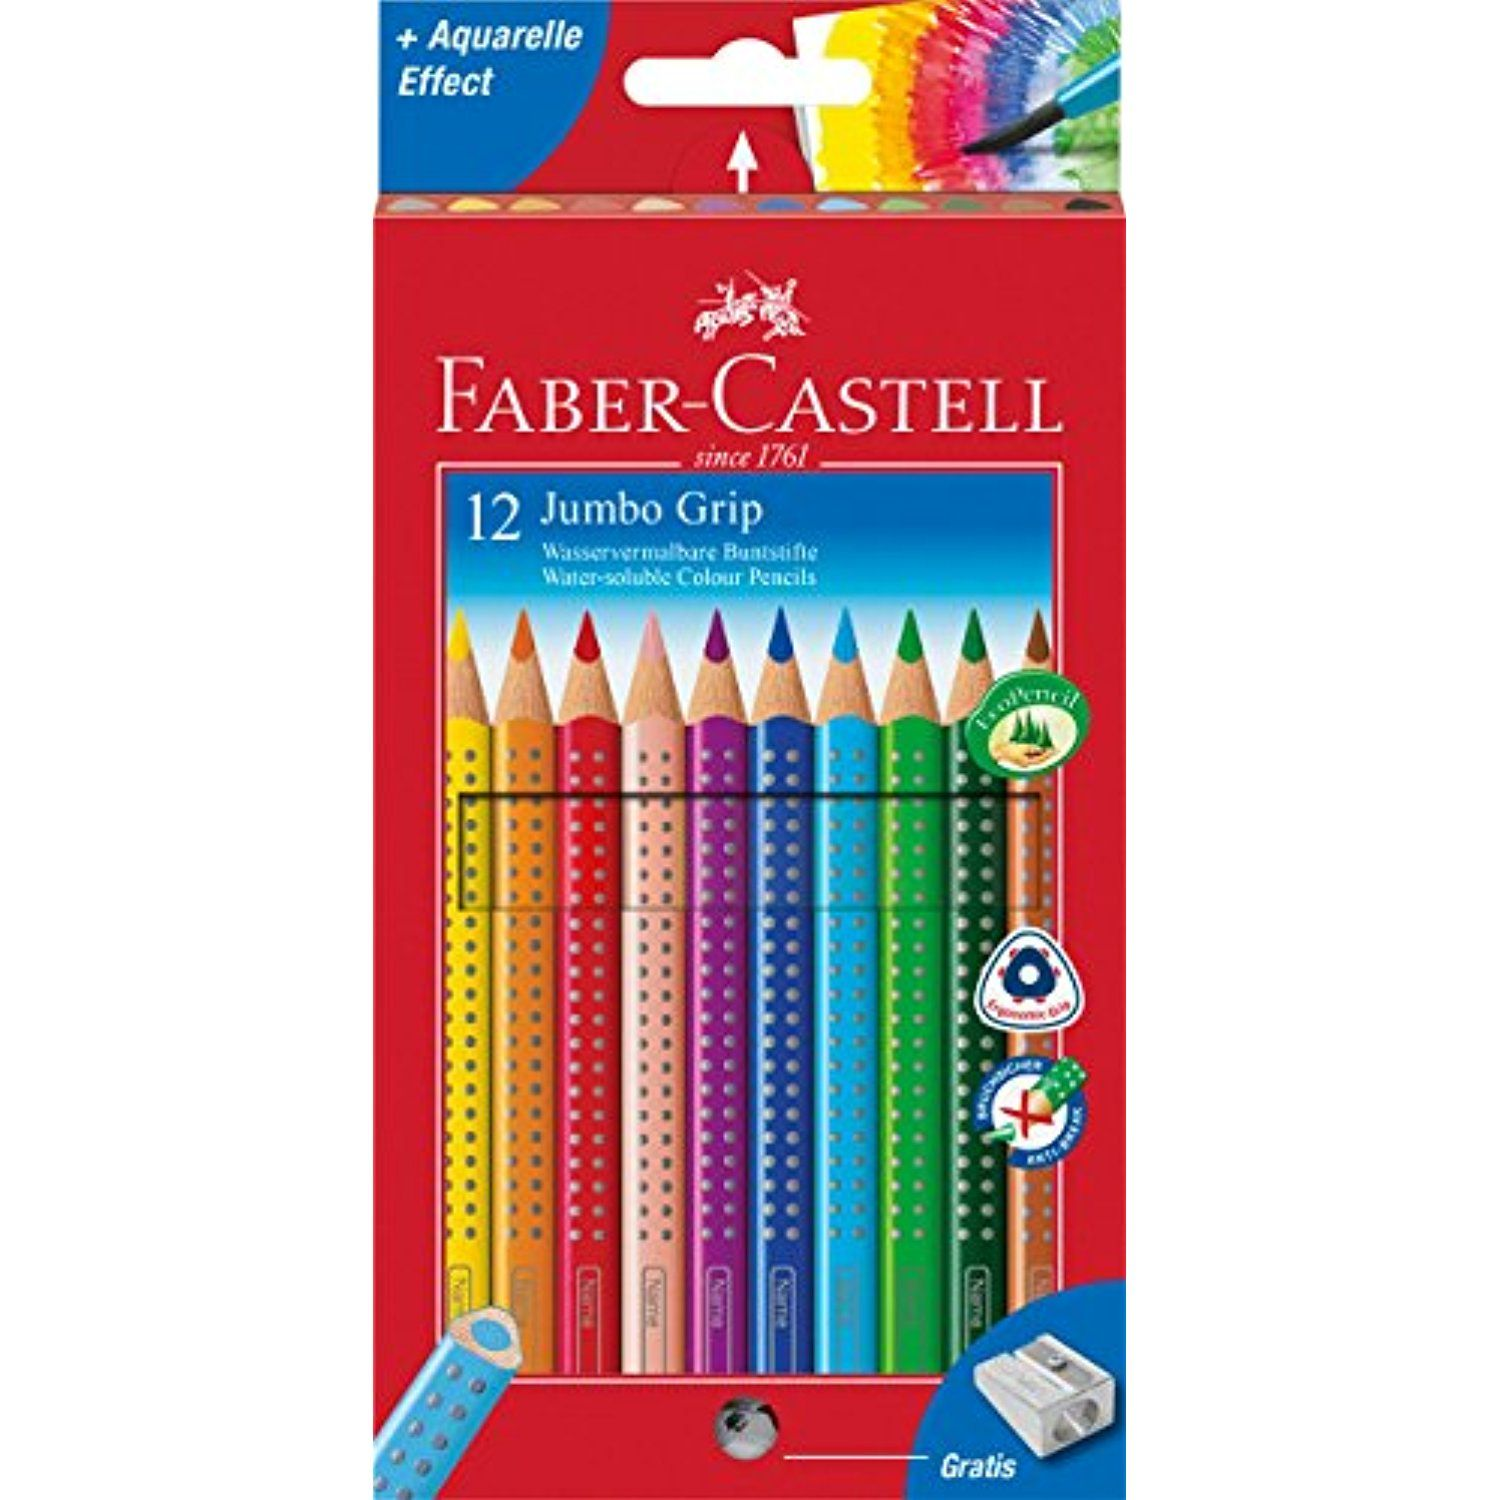 Faber Castell 12 Jumbo Grip Colored Pencils 12 Pk Learn More By